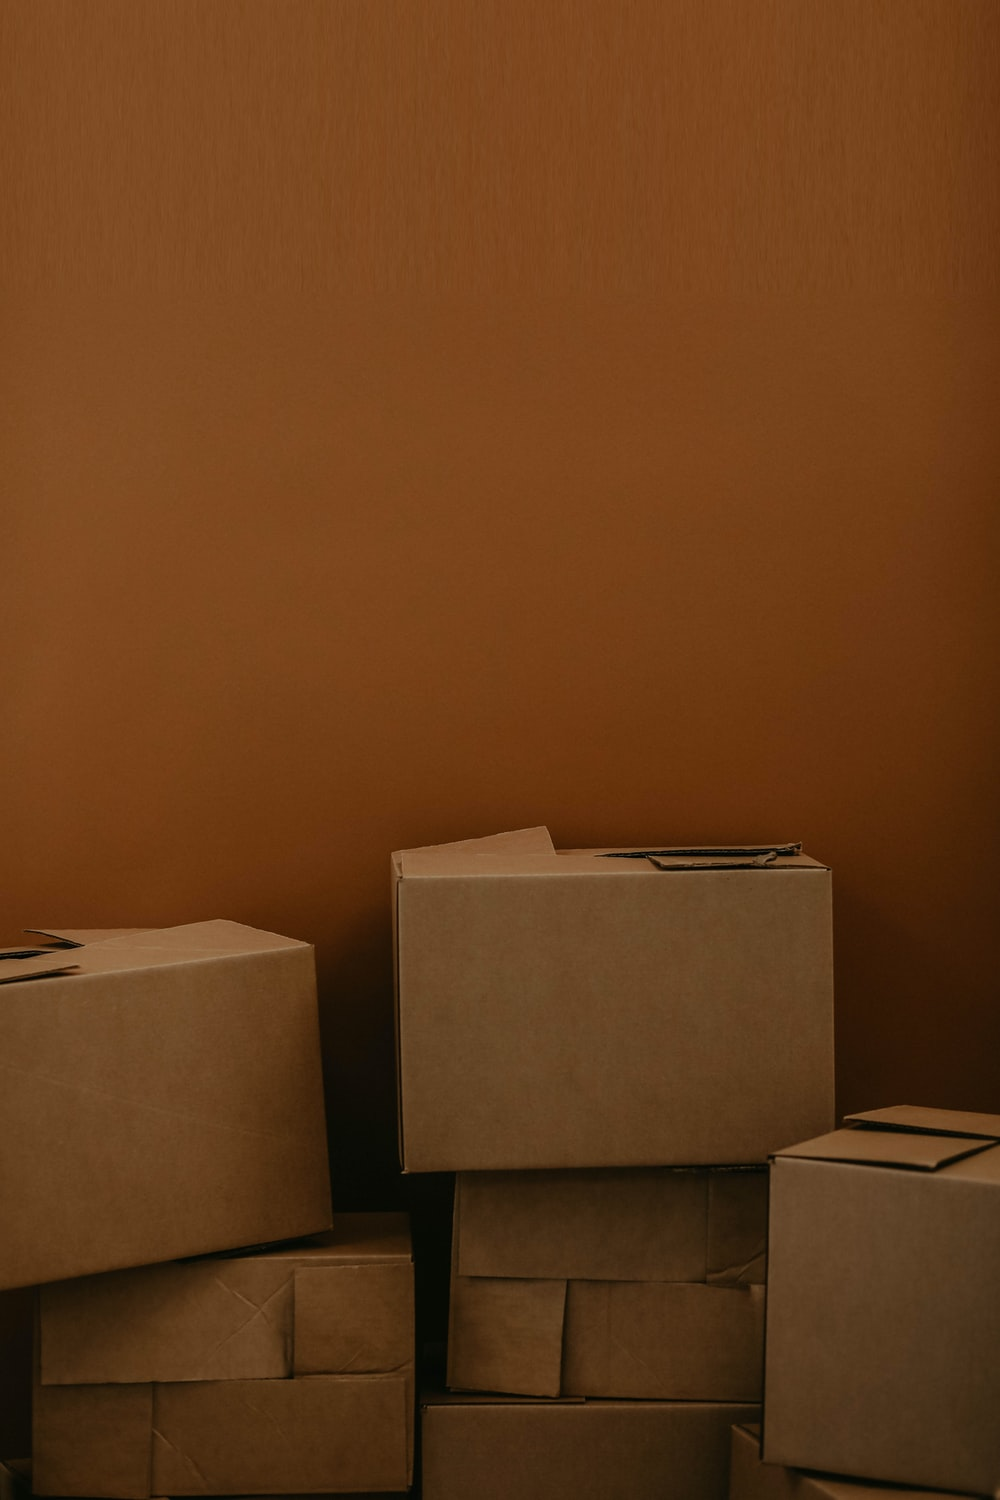 white cardboard box on brown wooden table